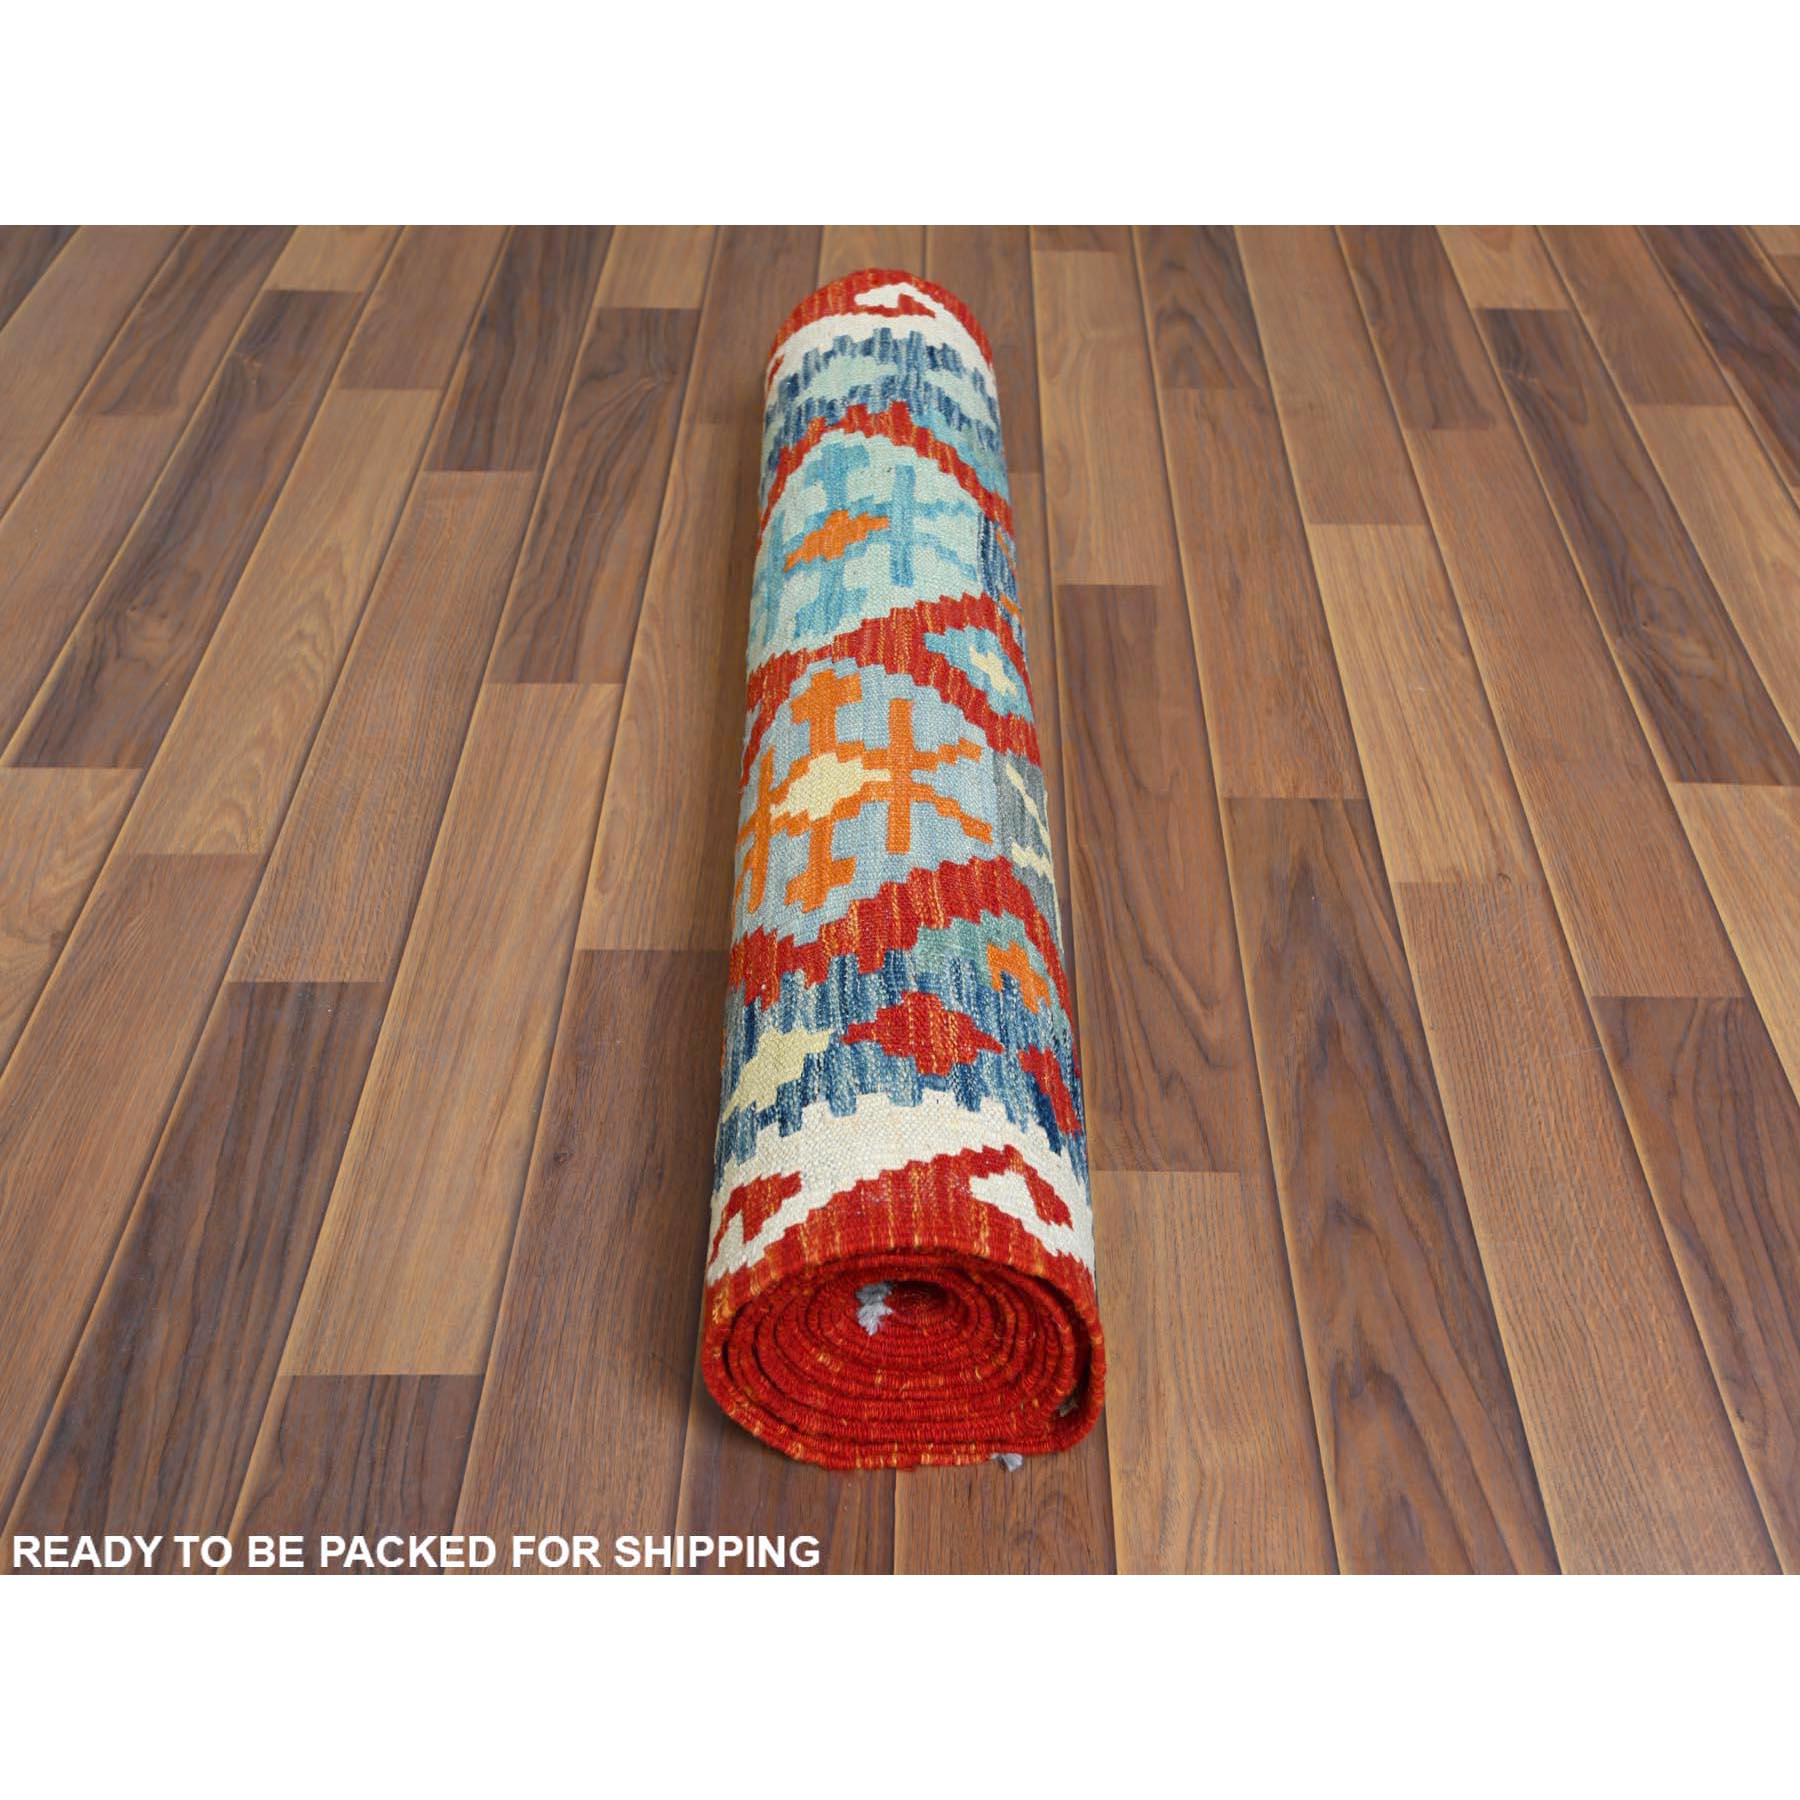 "2'9""x16' Hand Woven Colorful Afghan Kilim Tribal Design Vibrant Wool Reversible Oriental XL Runner Rug"